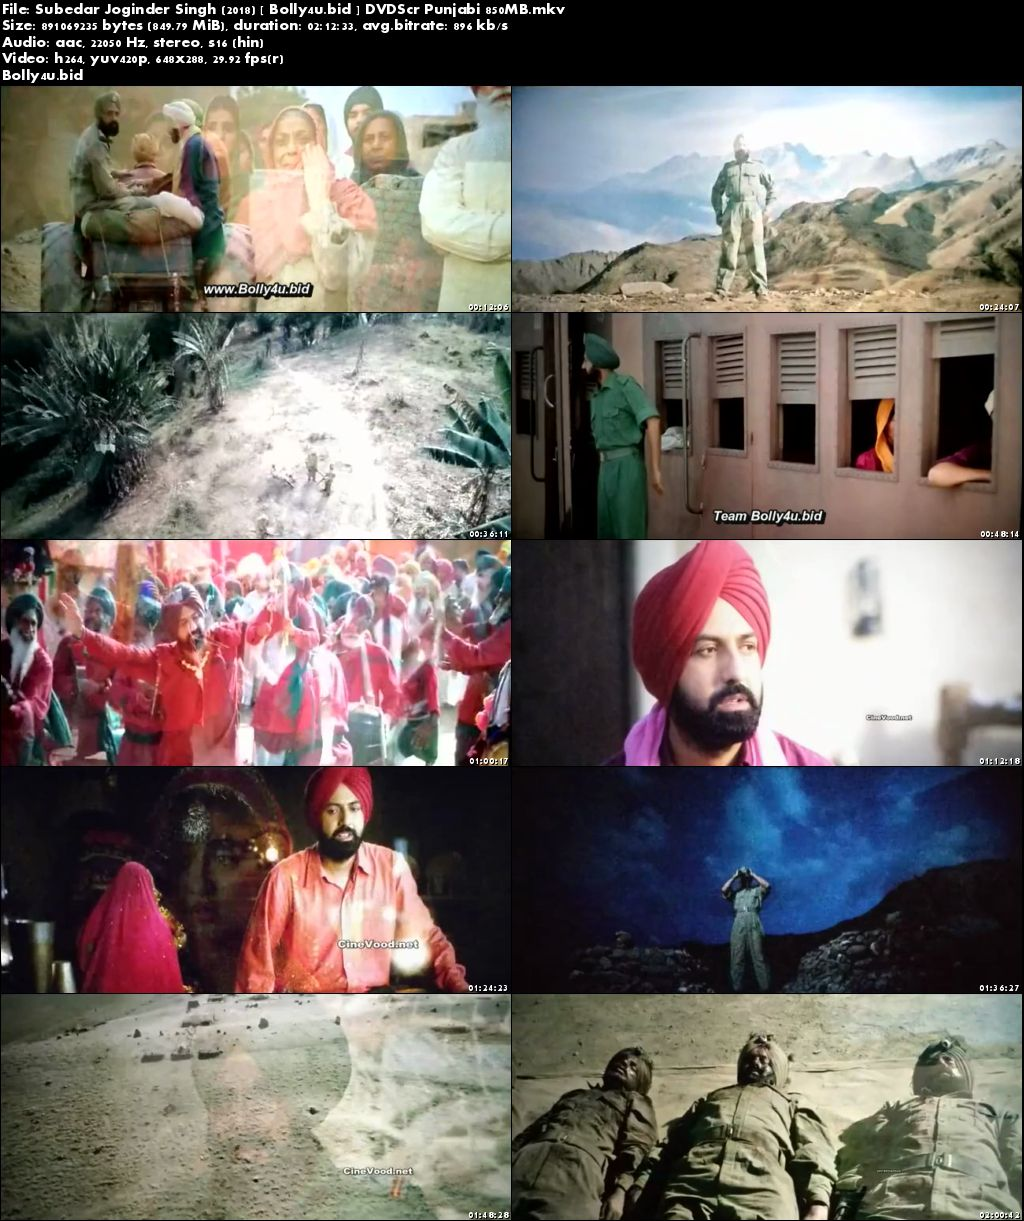 Subedar Joginder Singh 2018 DVDScr 850MB Punjabi x264 Download